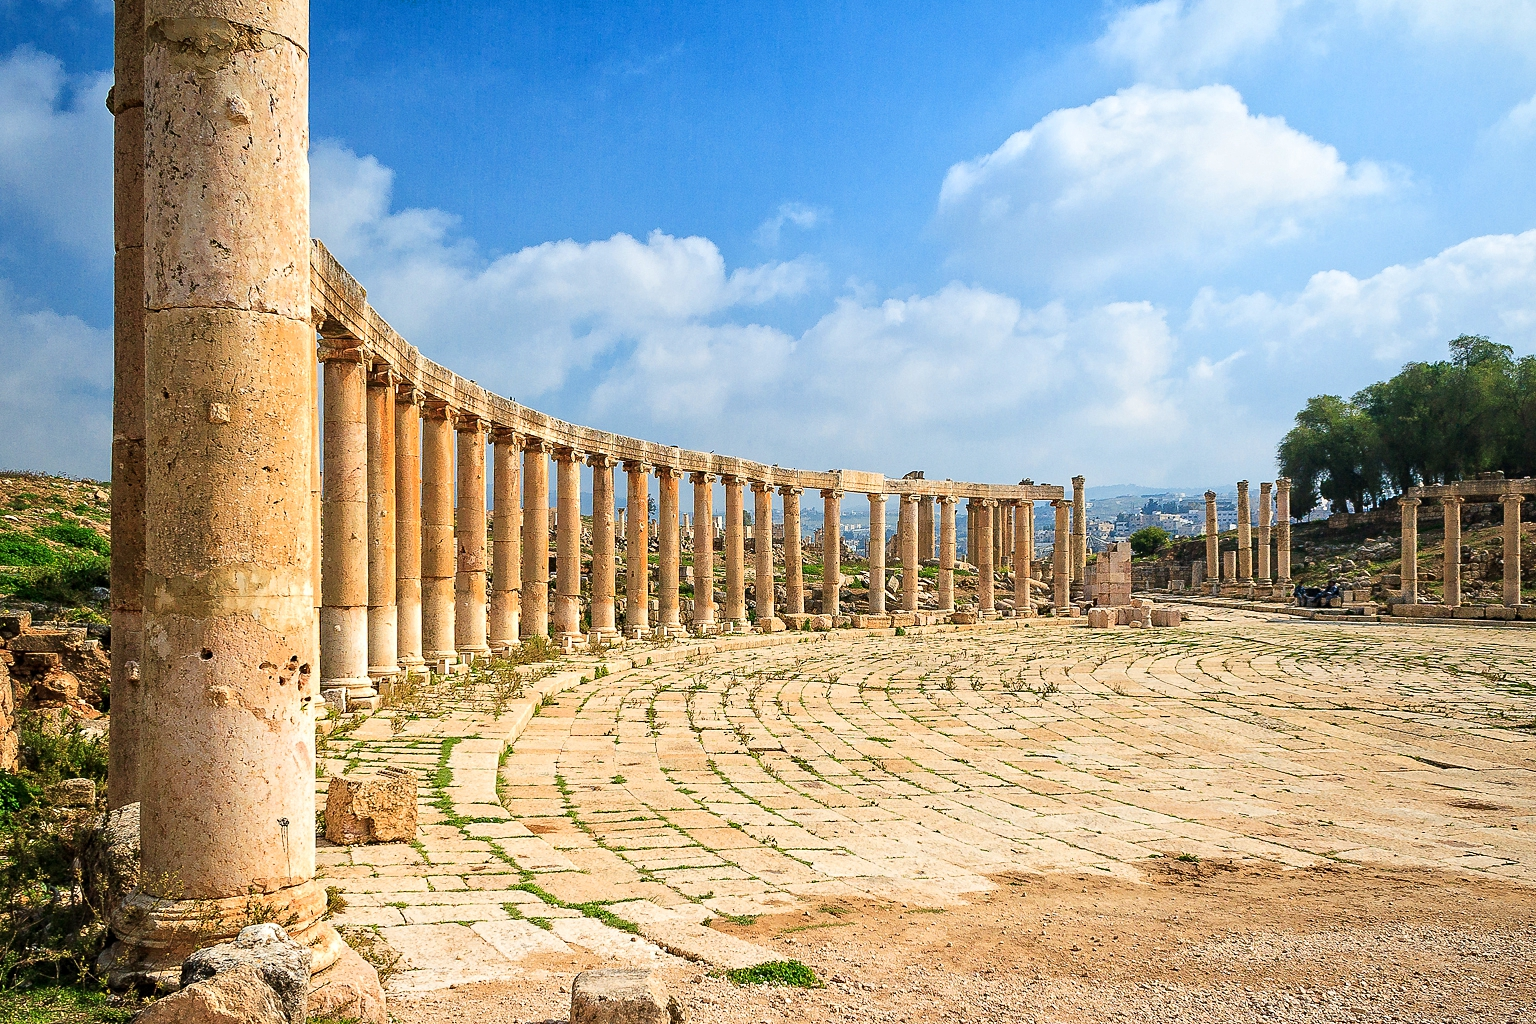 Jerash: The Best Roman Ruins You've Never Heard Of